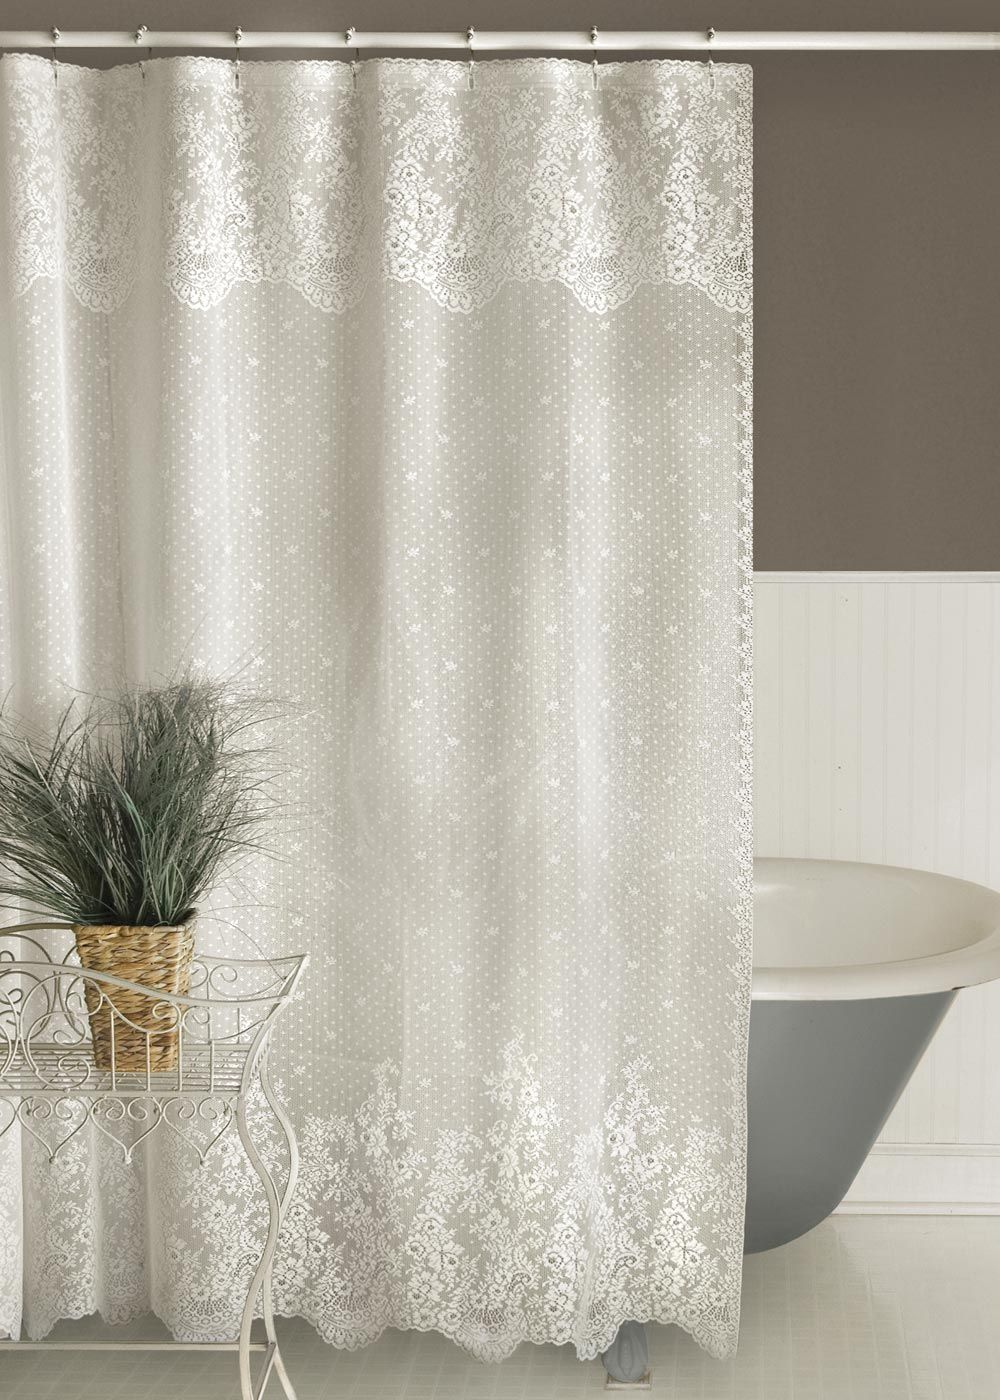 Heritage Lace Floret Lace Shower Curtain Lace Shower Curtains